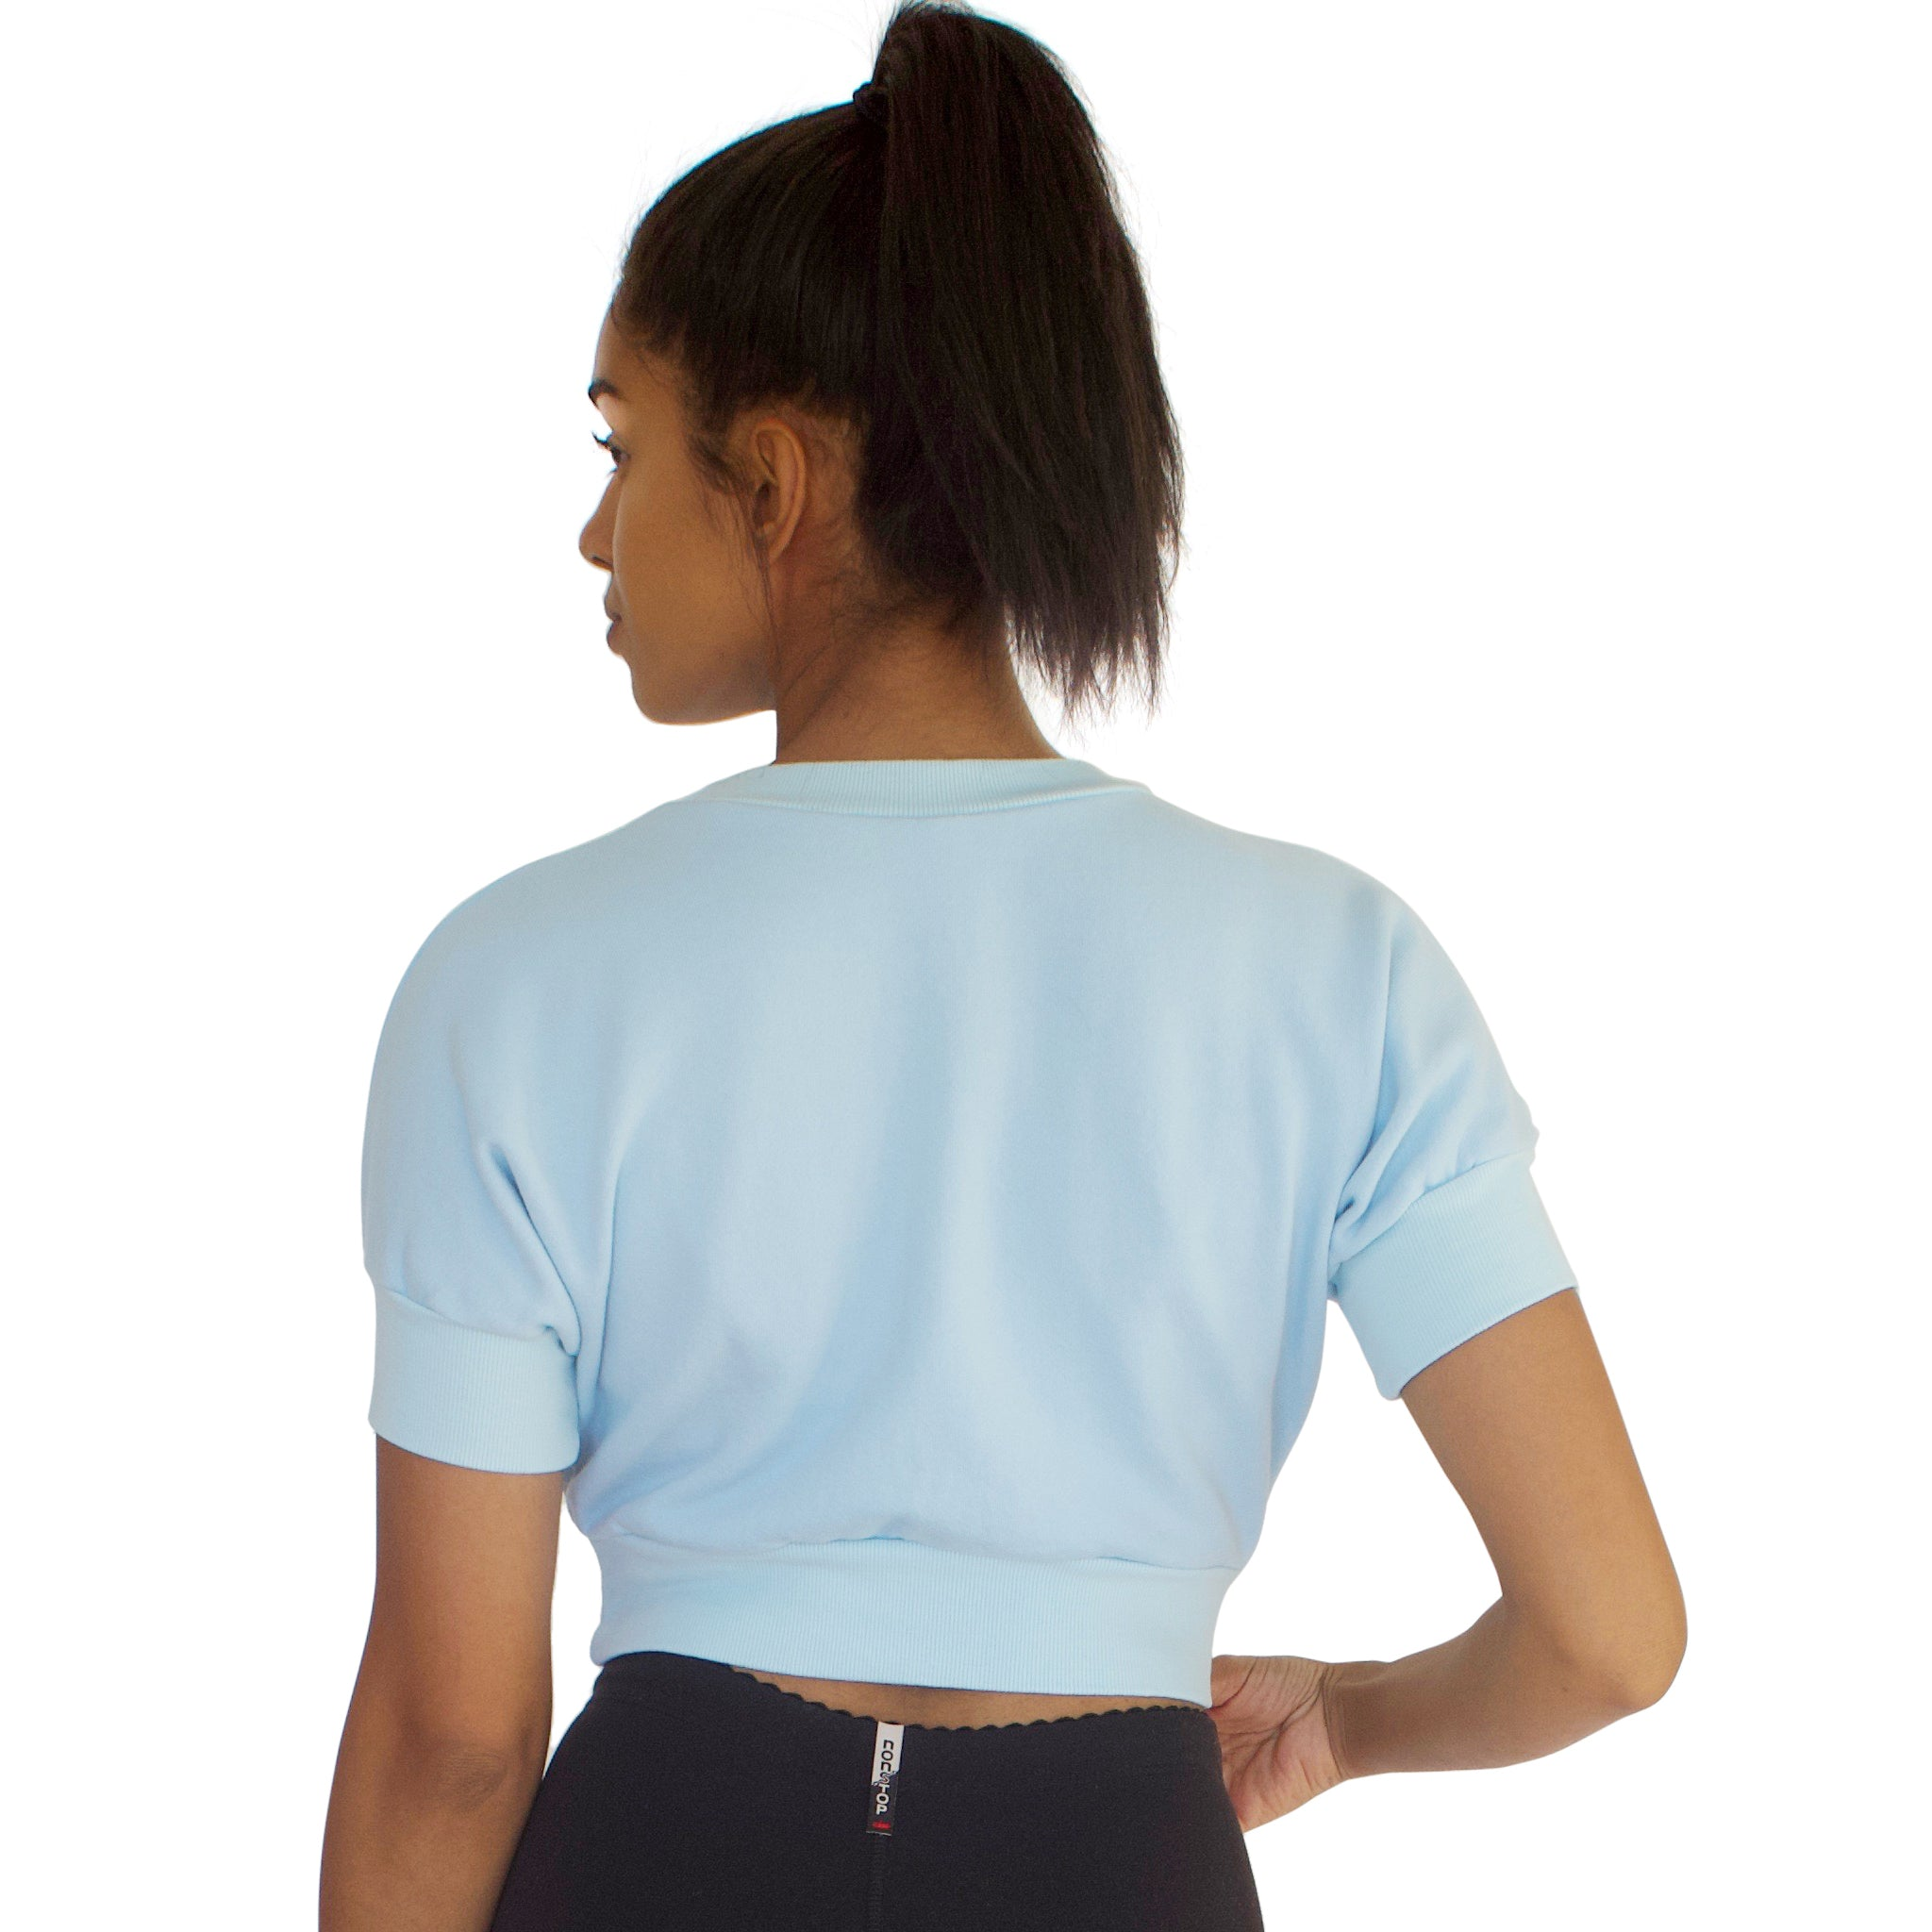 Back view of the 100% cotton French Terry Anita crop top in Sky Blue